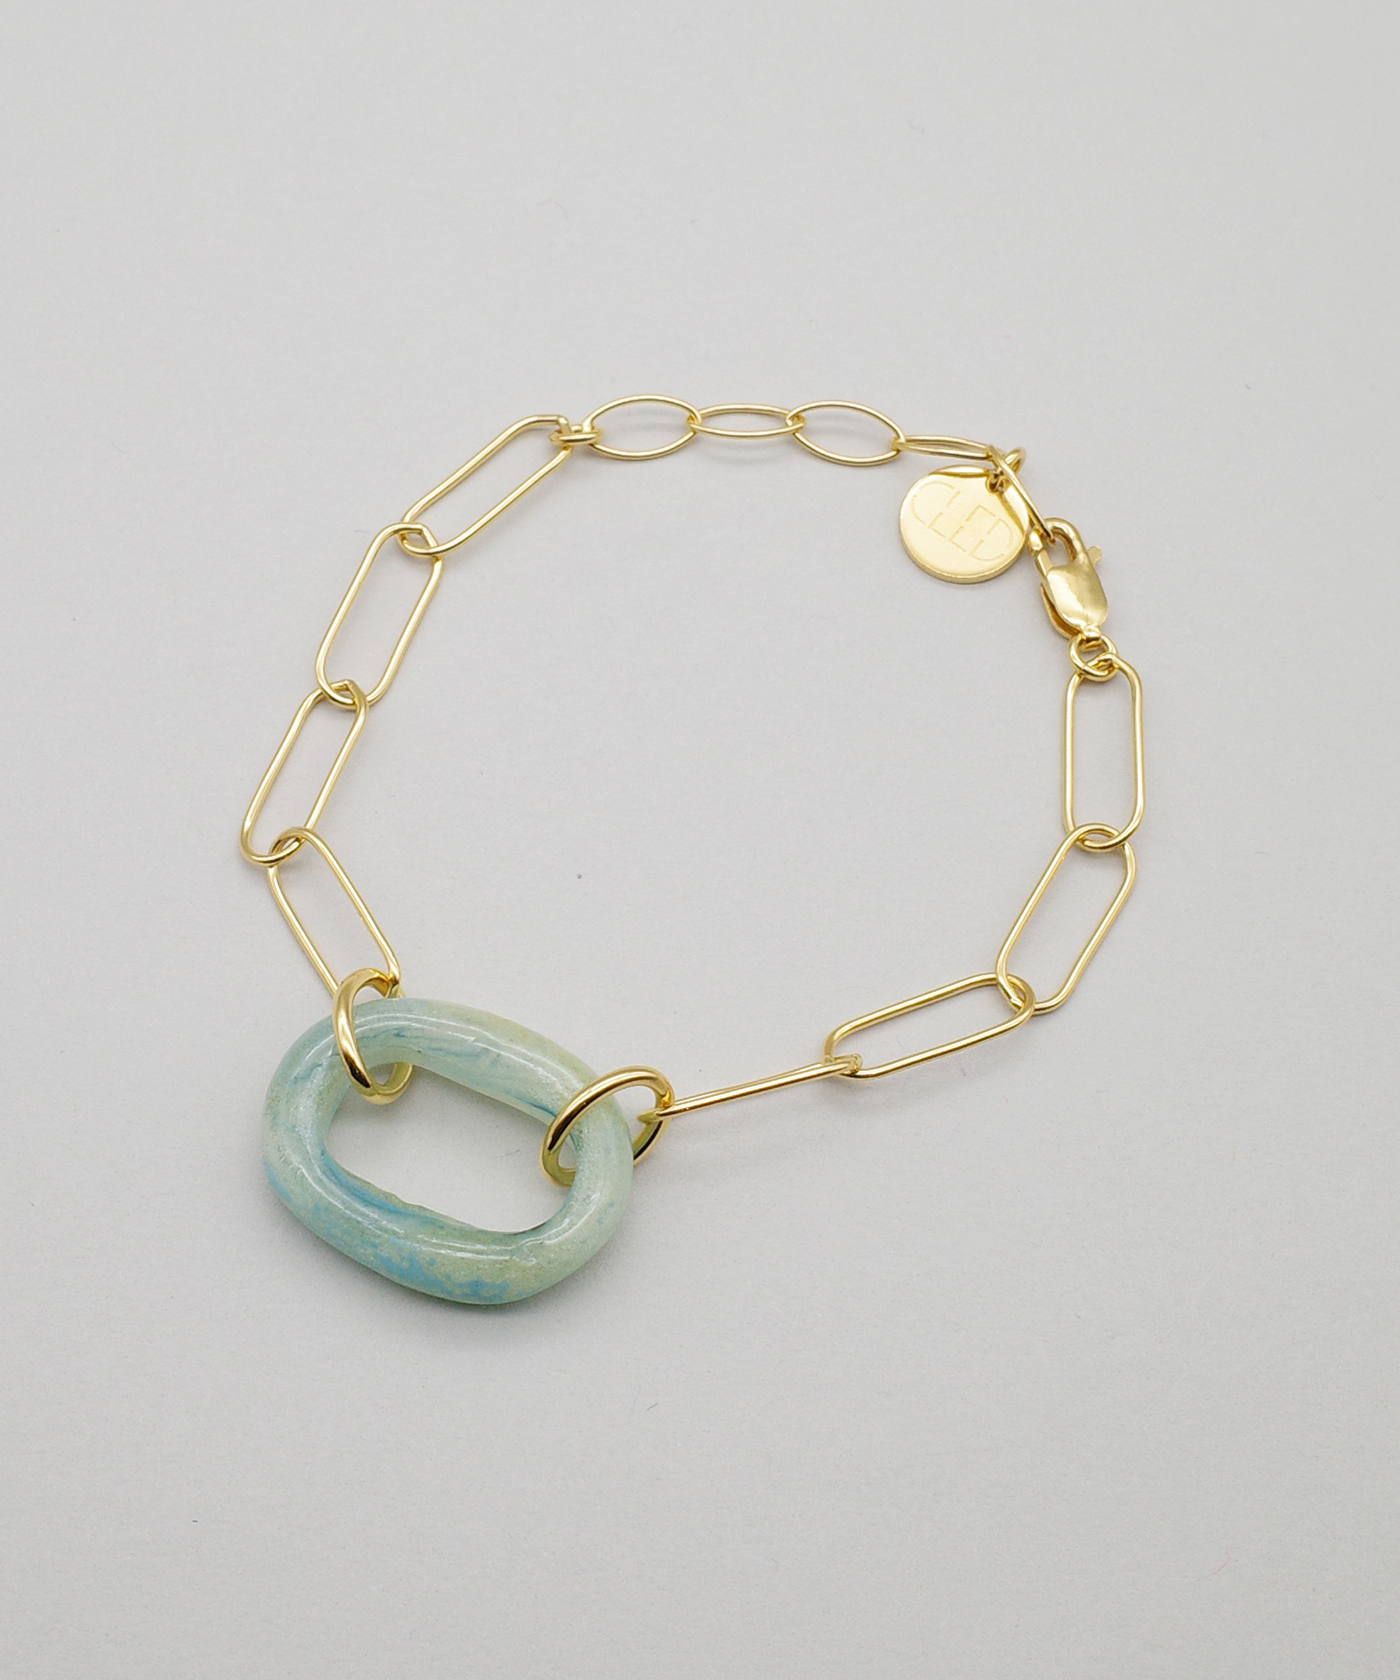 【CLED /クレッド 】The Day Loop Bracelet /  ブレスレット / Gold Vermeil×Blue Shade